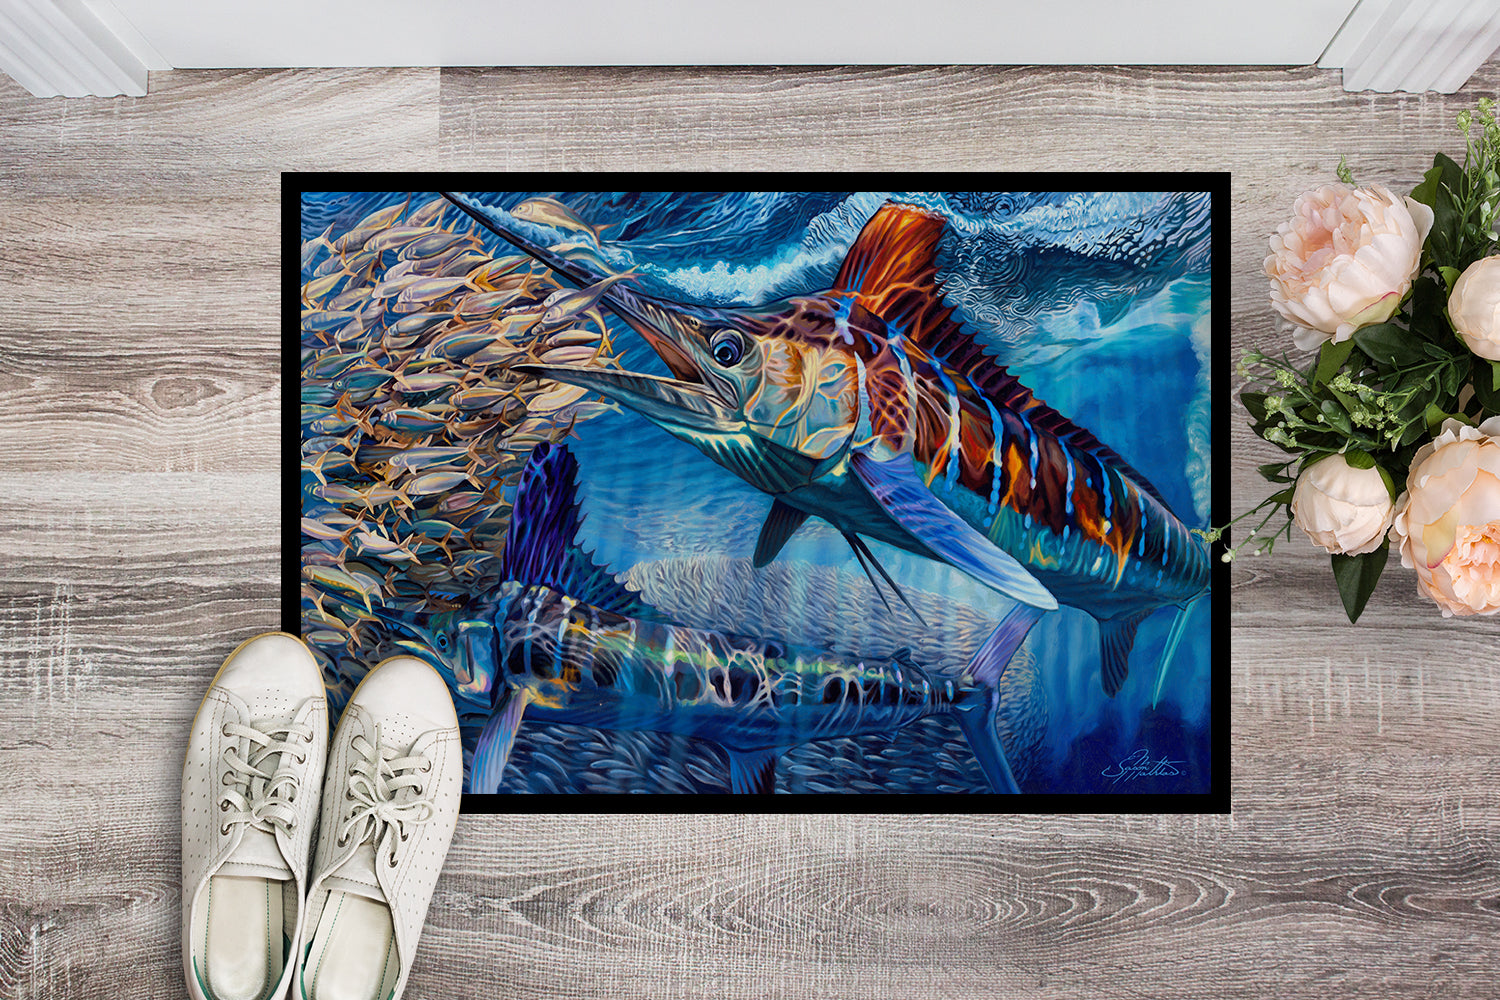 White Night White Marlin Indoor or Outdoor Mat 18x27 JMA2008MAT by Caroline's Treasures